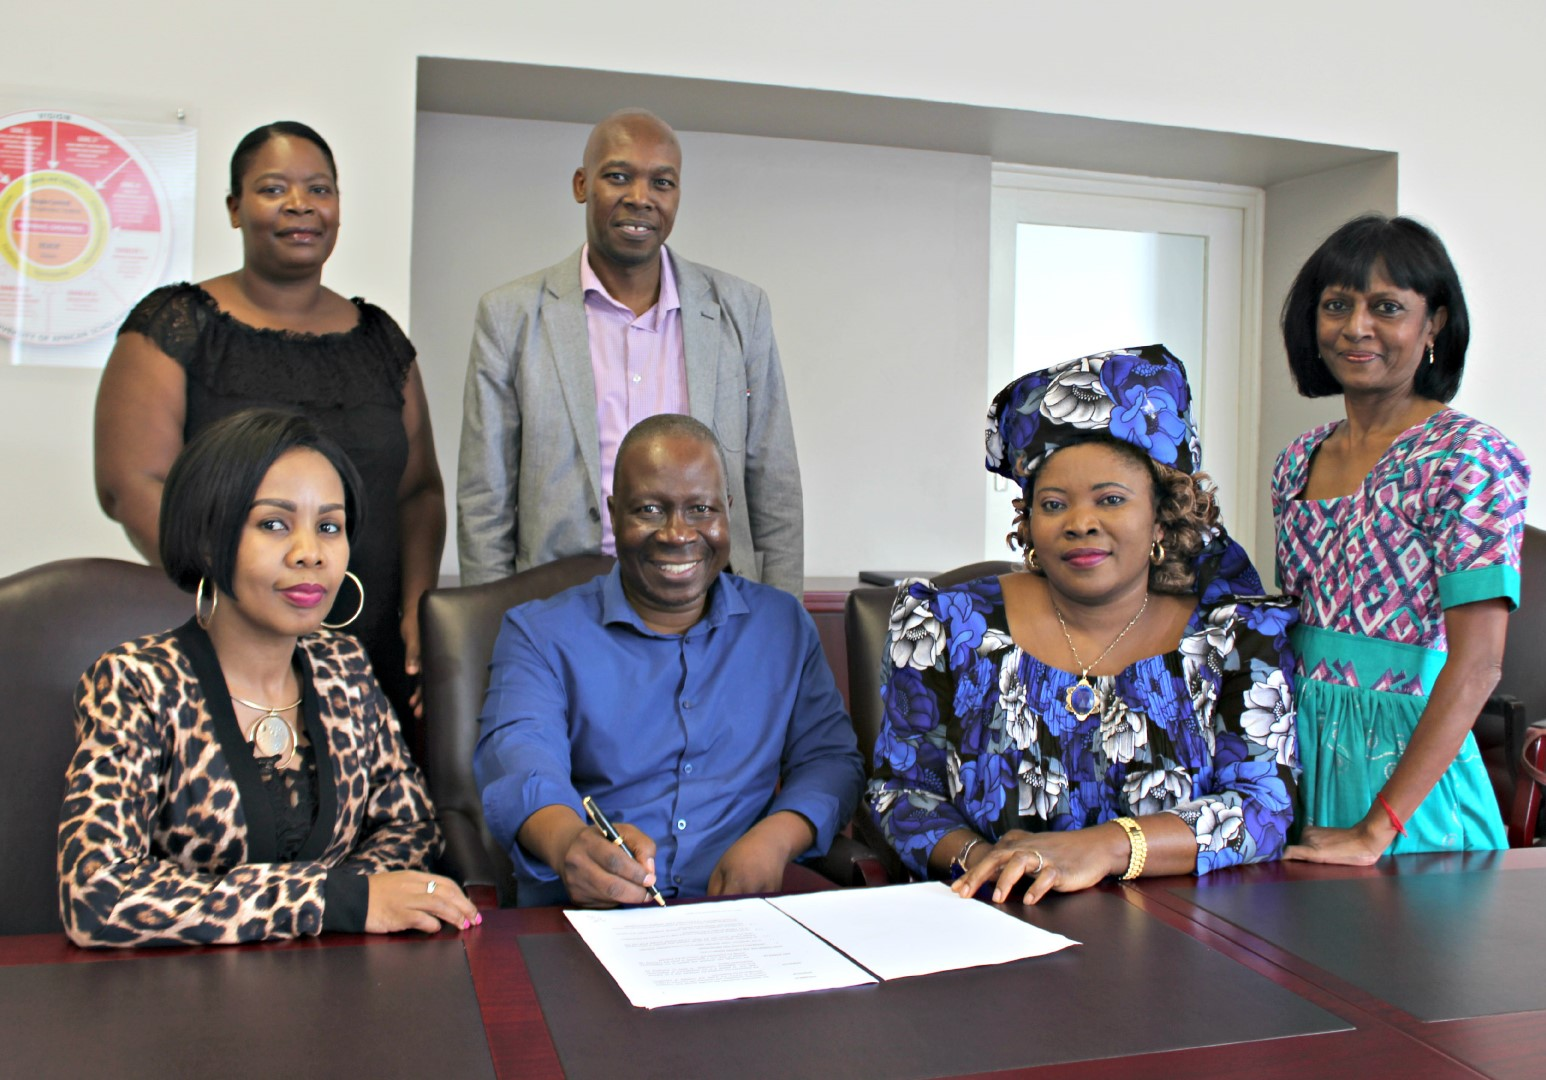 At the official announcement of the MOU between UKZN and the KZN Human Settlements Department are (from left, front) Ms Puseletso Nale of the KZN Department of Human Settlements; Prof Nhlanhla Mkhize; acting Dean of the School of Social Sciences Prof Vivian Ojong and Dr Desiree Manicom; and (back) Ms Zandile Cele of the KZN Department of Human Settlements and Dr Sthembiso Myeni.